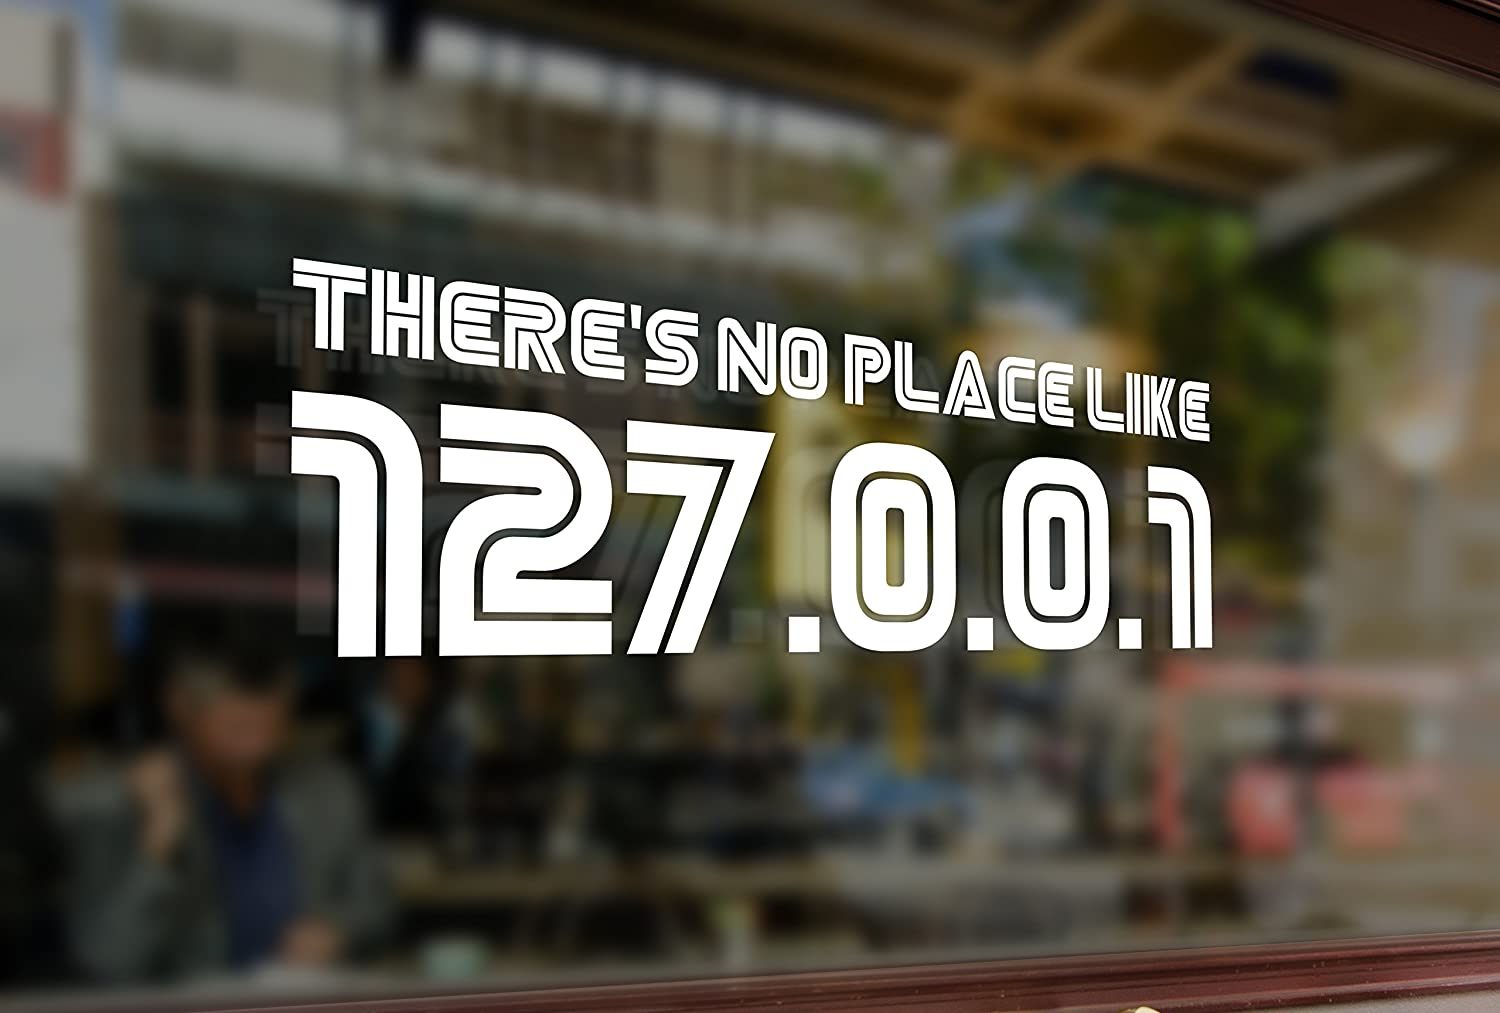 25 Centimeters There's No Place Like 127.0.0.1 Vinyl Stickers Funny Decals Bumper Car Auto Computer Laptop Wall Window Glass Skateboard Snowboard